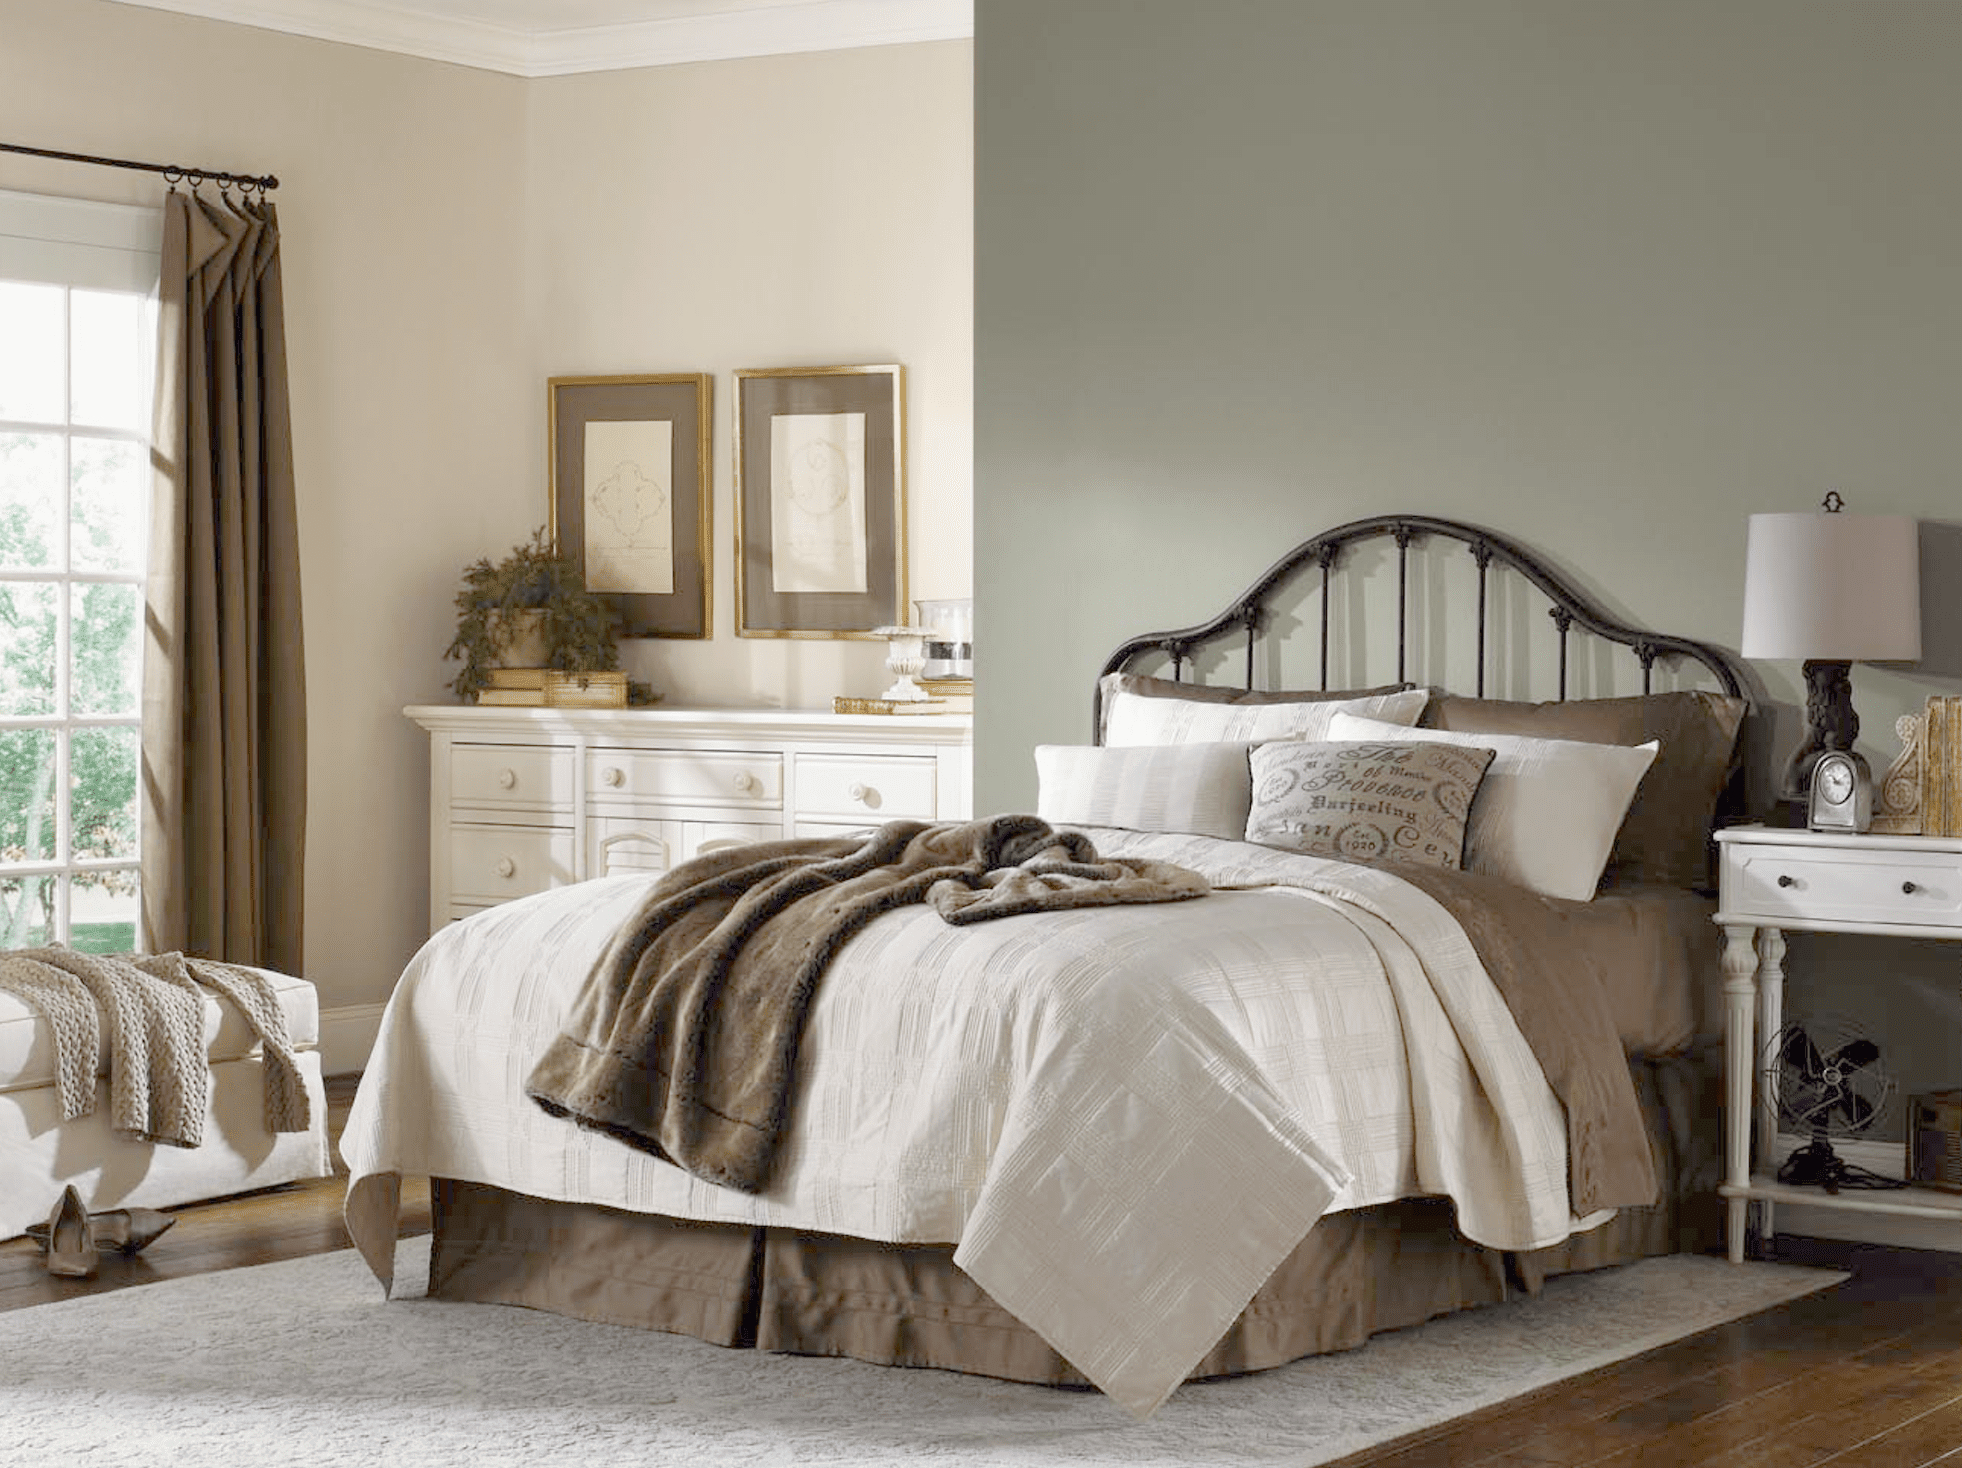 8 Relaxing Sherwin Williams Paint Colors For Bedrooms for dimensions 1962 X 1468